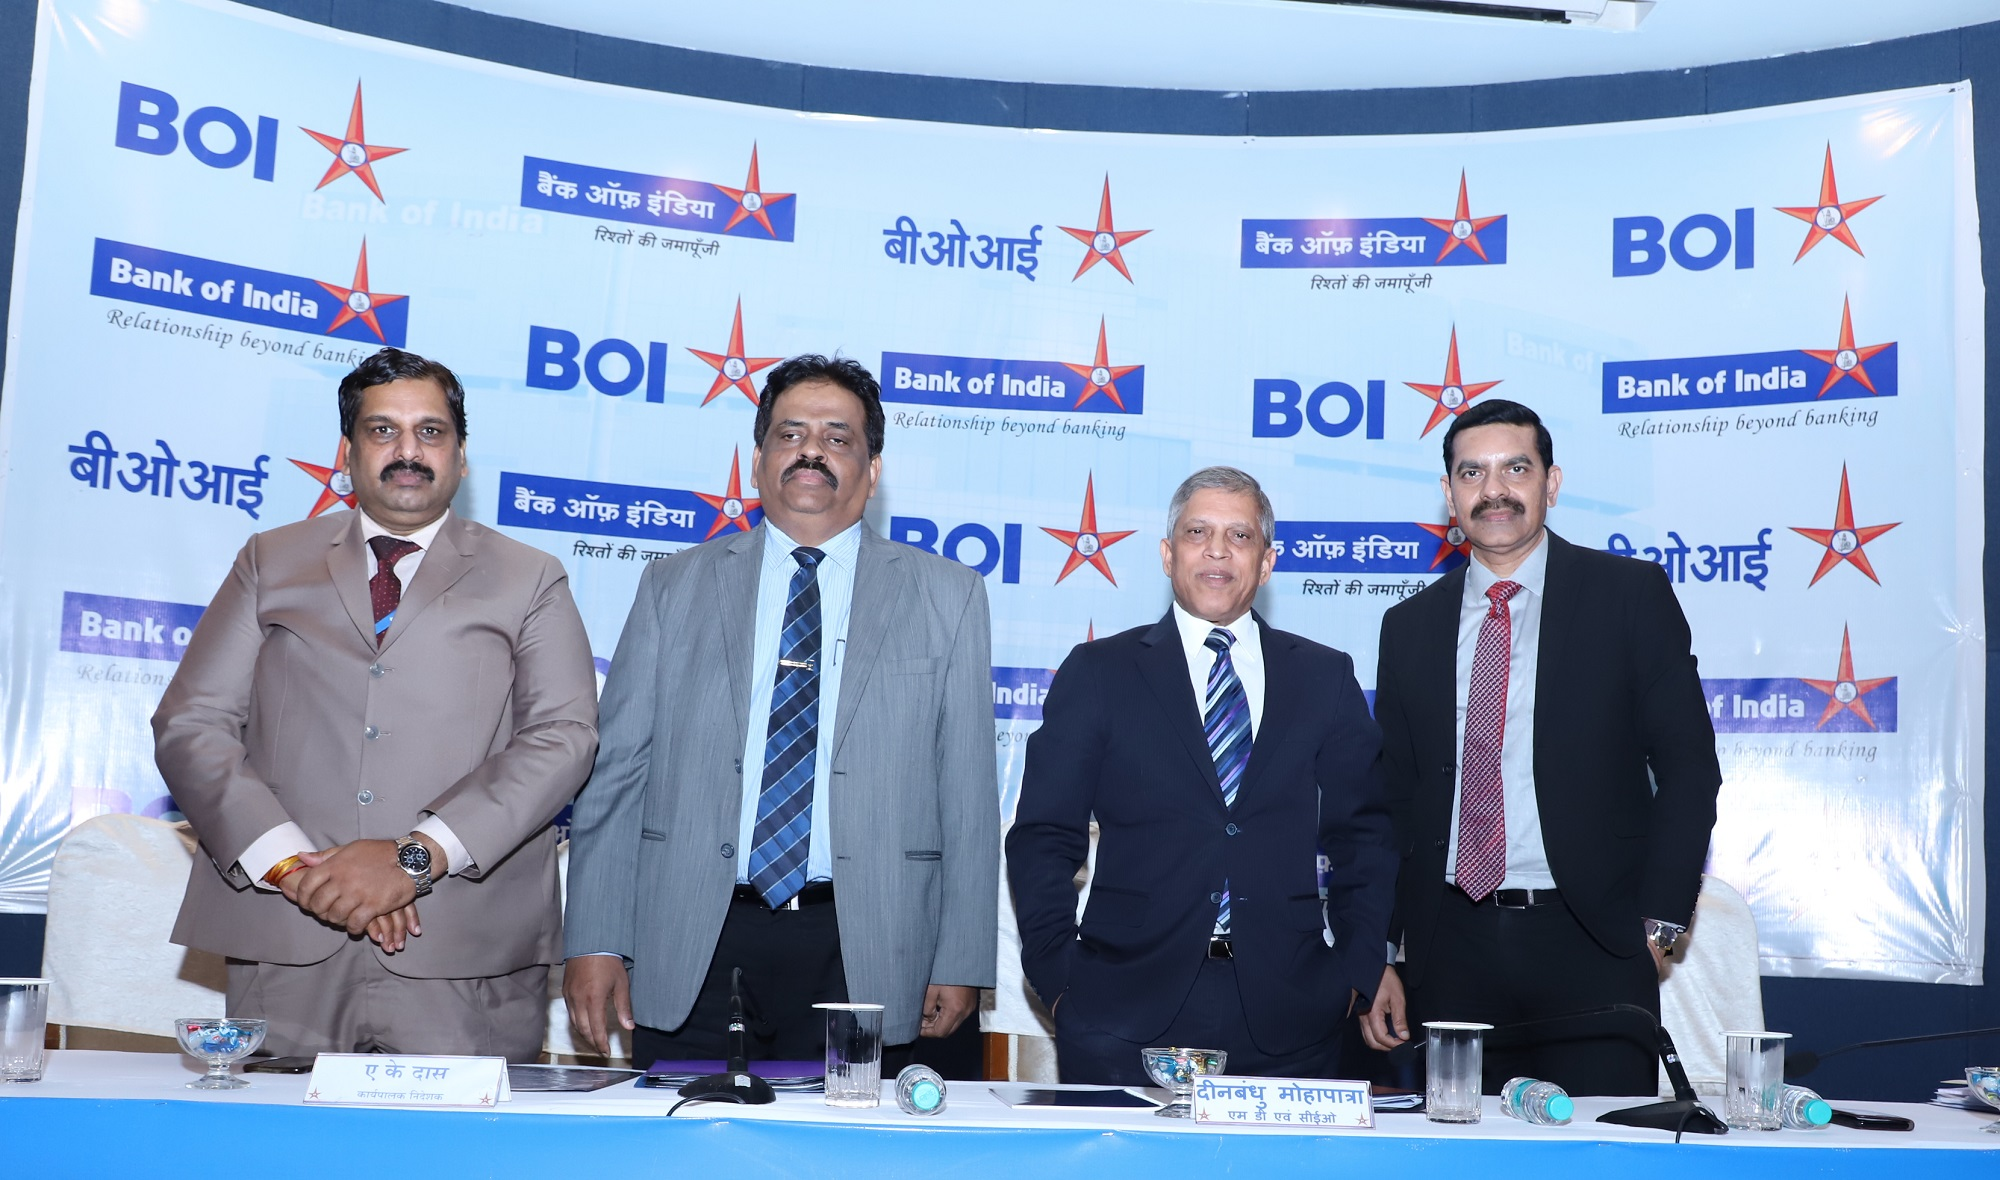 (L-R) Shri K.V.Raghavendra ( General Manager and CFO, Bank of India), Shri A.K. Das ( Executive Director, Bank of India), Shri Dinabandhu Mohapatra (Managing Director and Chief Executive Officer, Bank of India), Shri C.G. Chaitanya ( Executive Director, Bank of India)  at the announcement of the Banks Q3 FY19 Financial Results - Photo By Sachin Murdeshwar GPN News Network